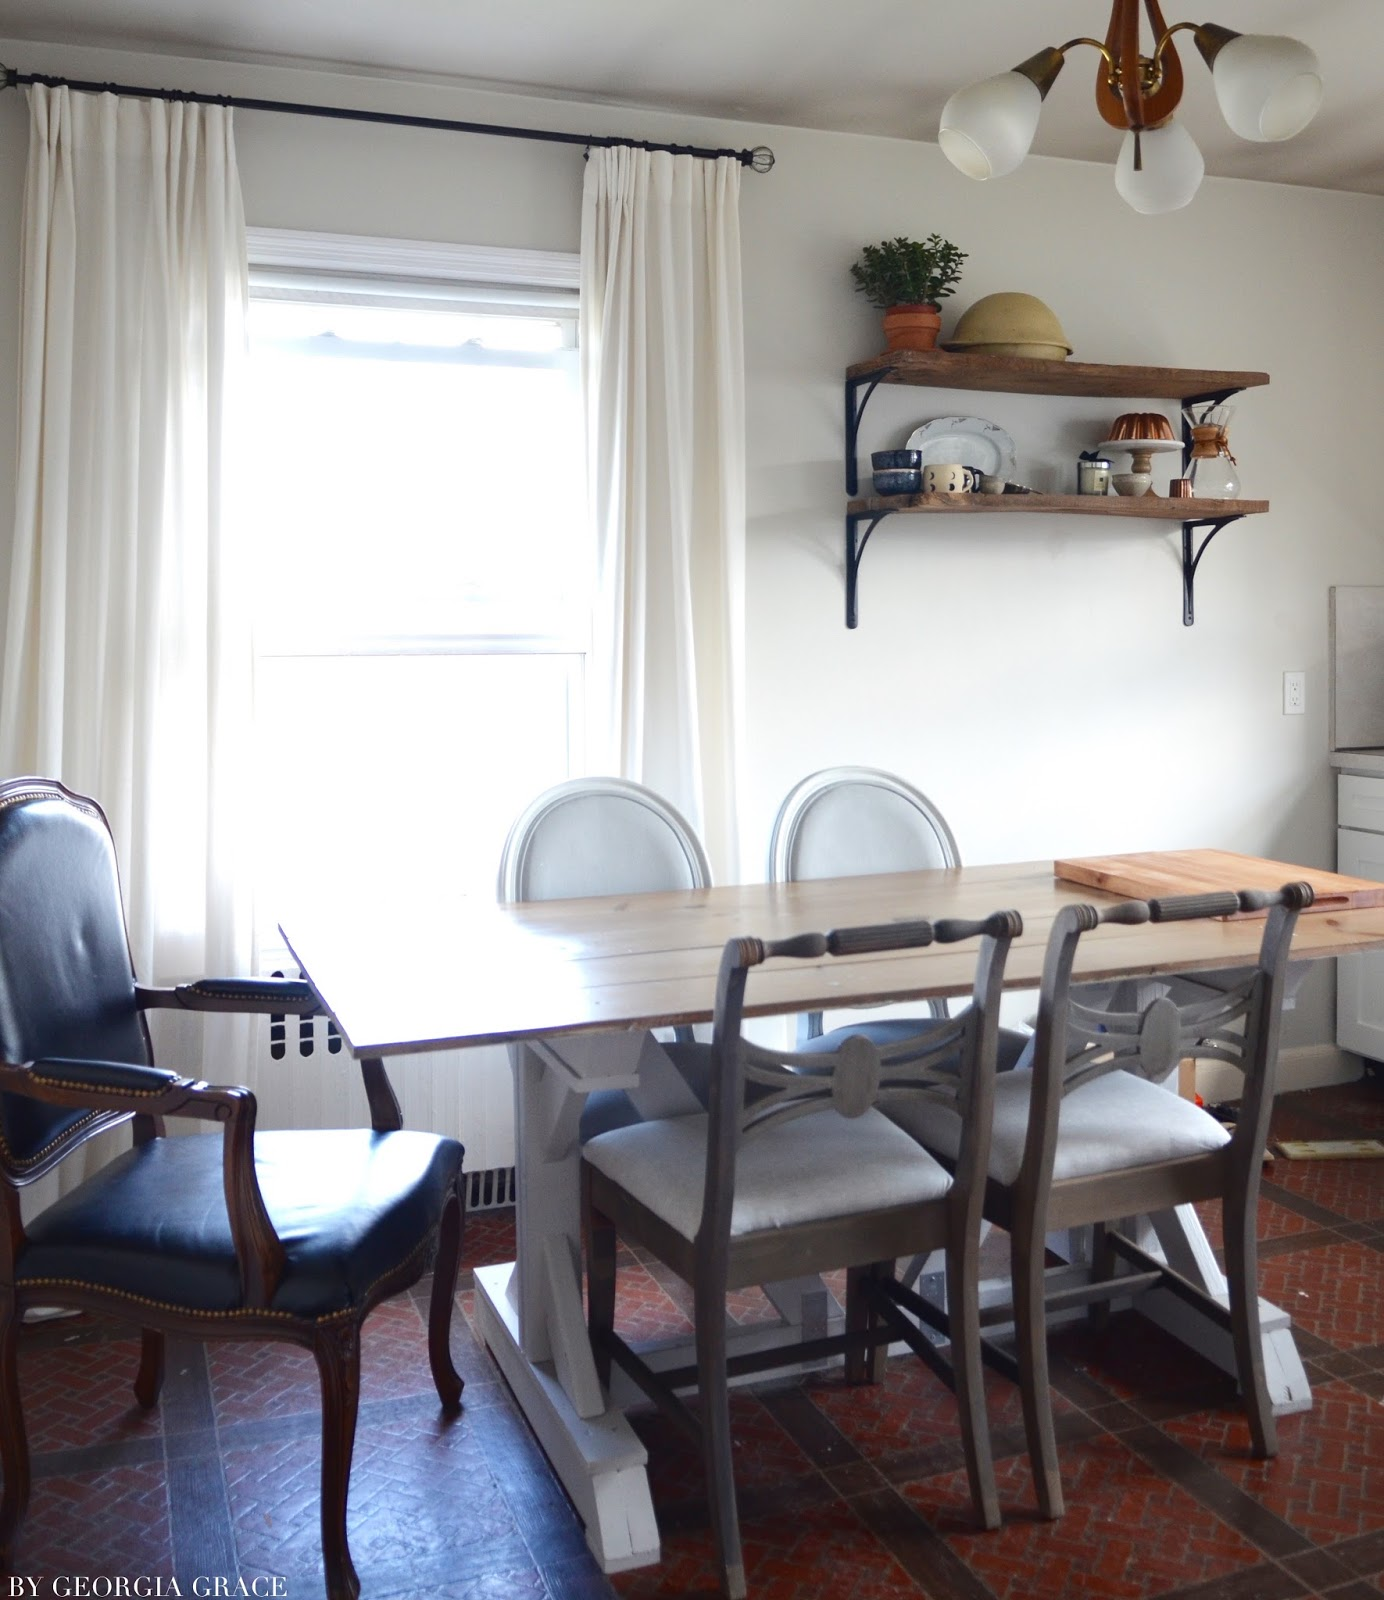 Kitchen: New Shelves & Chairs | By Georgia Grace